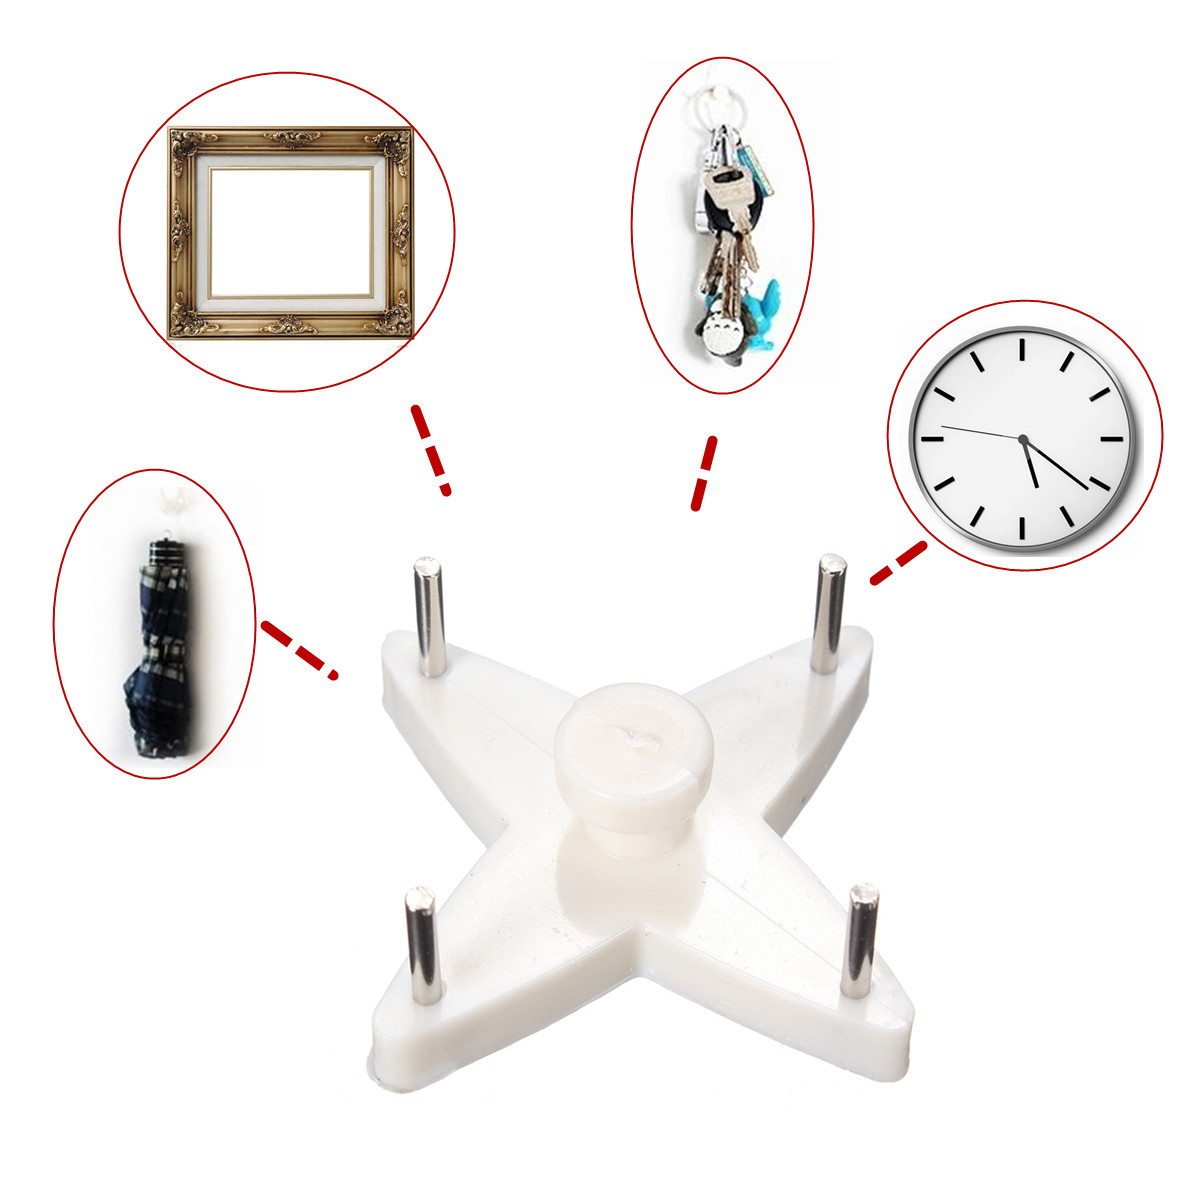 Plastic hard wall picture photos mirror frame hanging hook for Mirror hooks